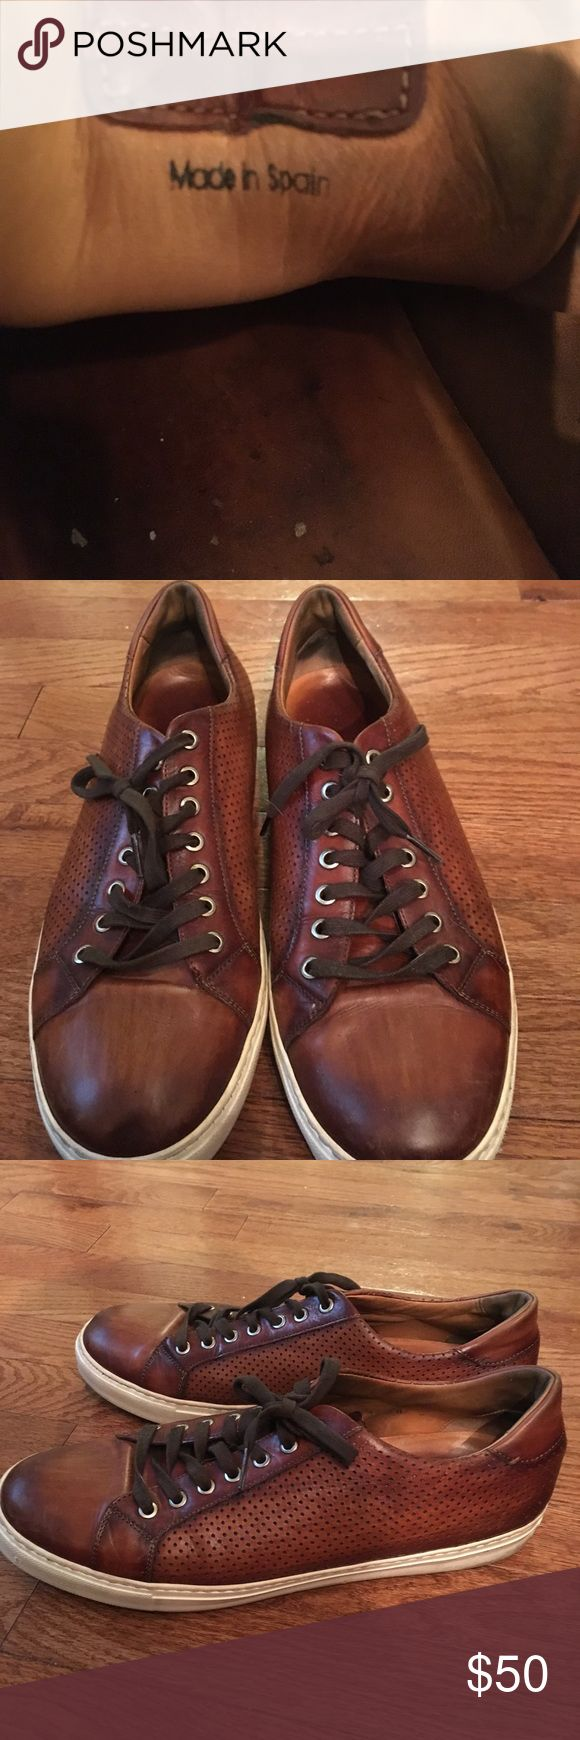 Magnanni Sneaker's Men's Size 12 Authentic pre owned Magnanni Sneakers . The...